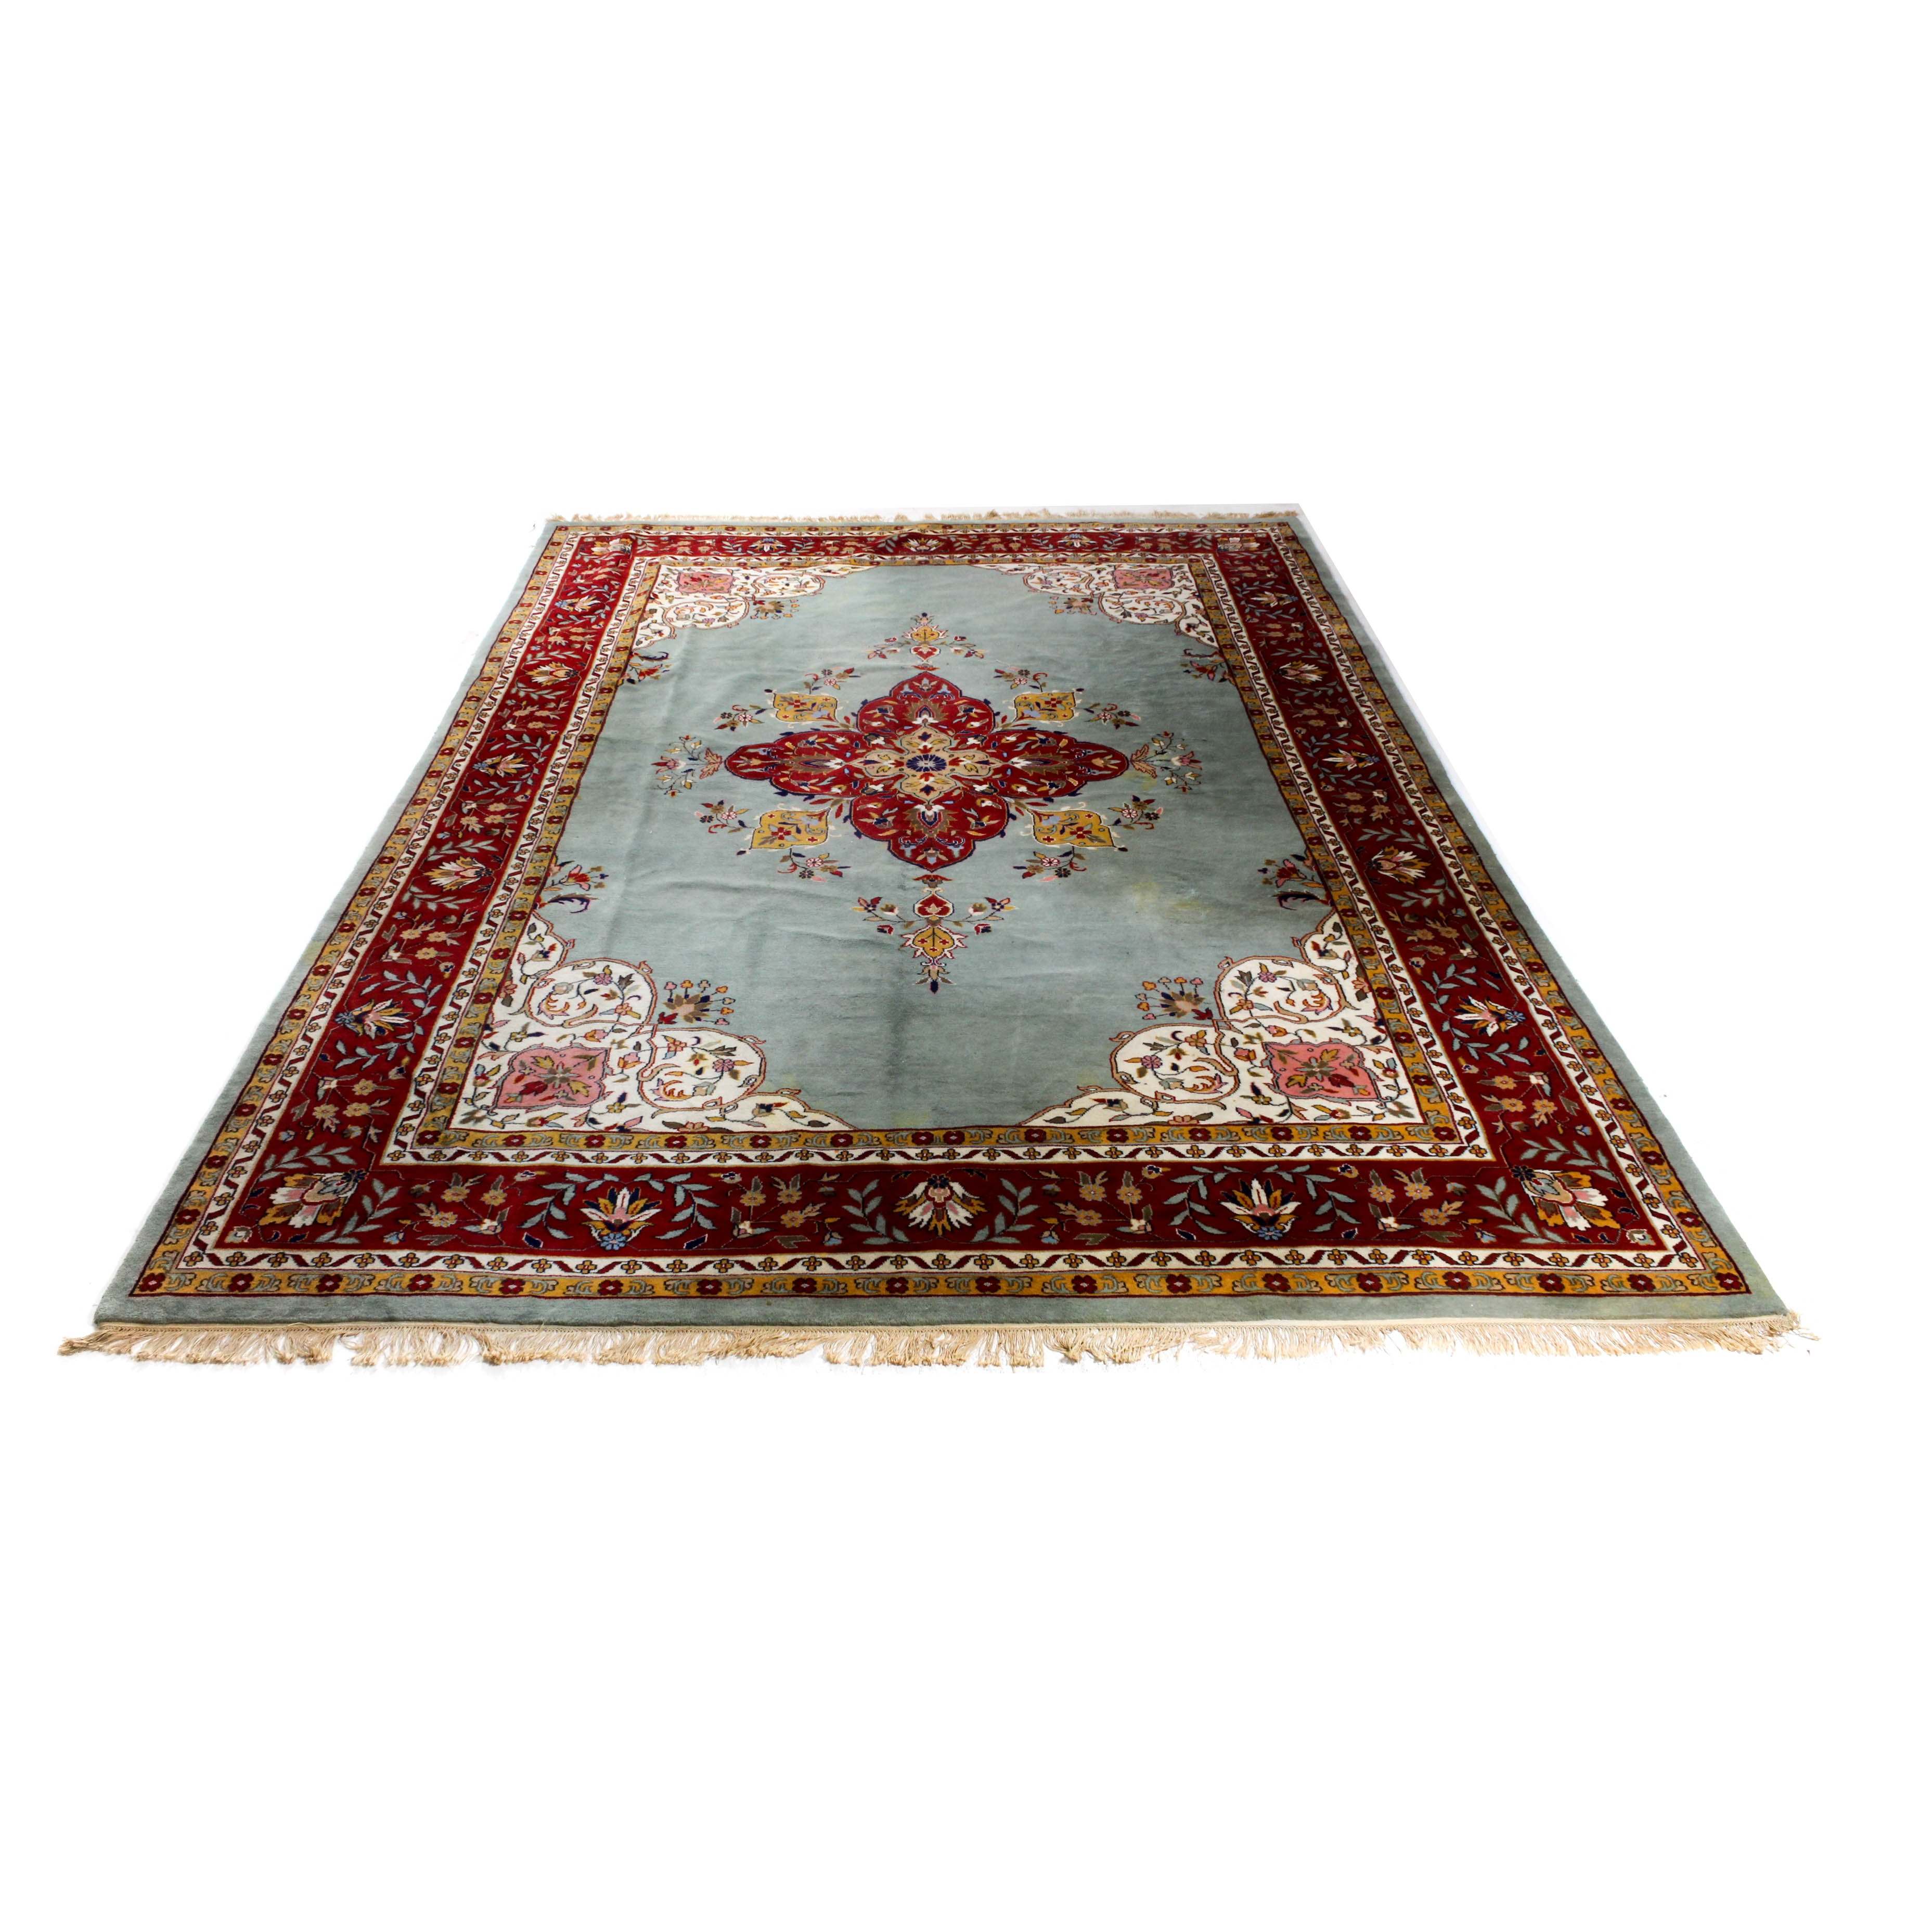 Old Hand-Knotted Indo-Persian Kerman Rug